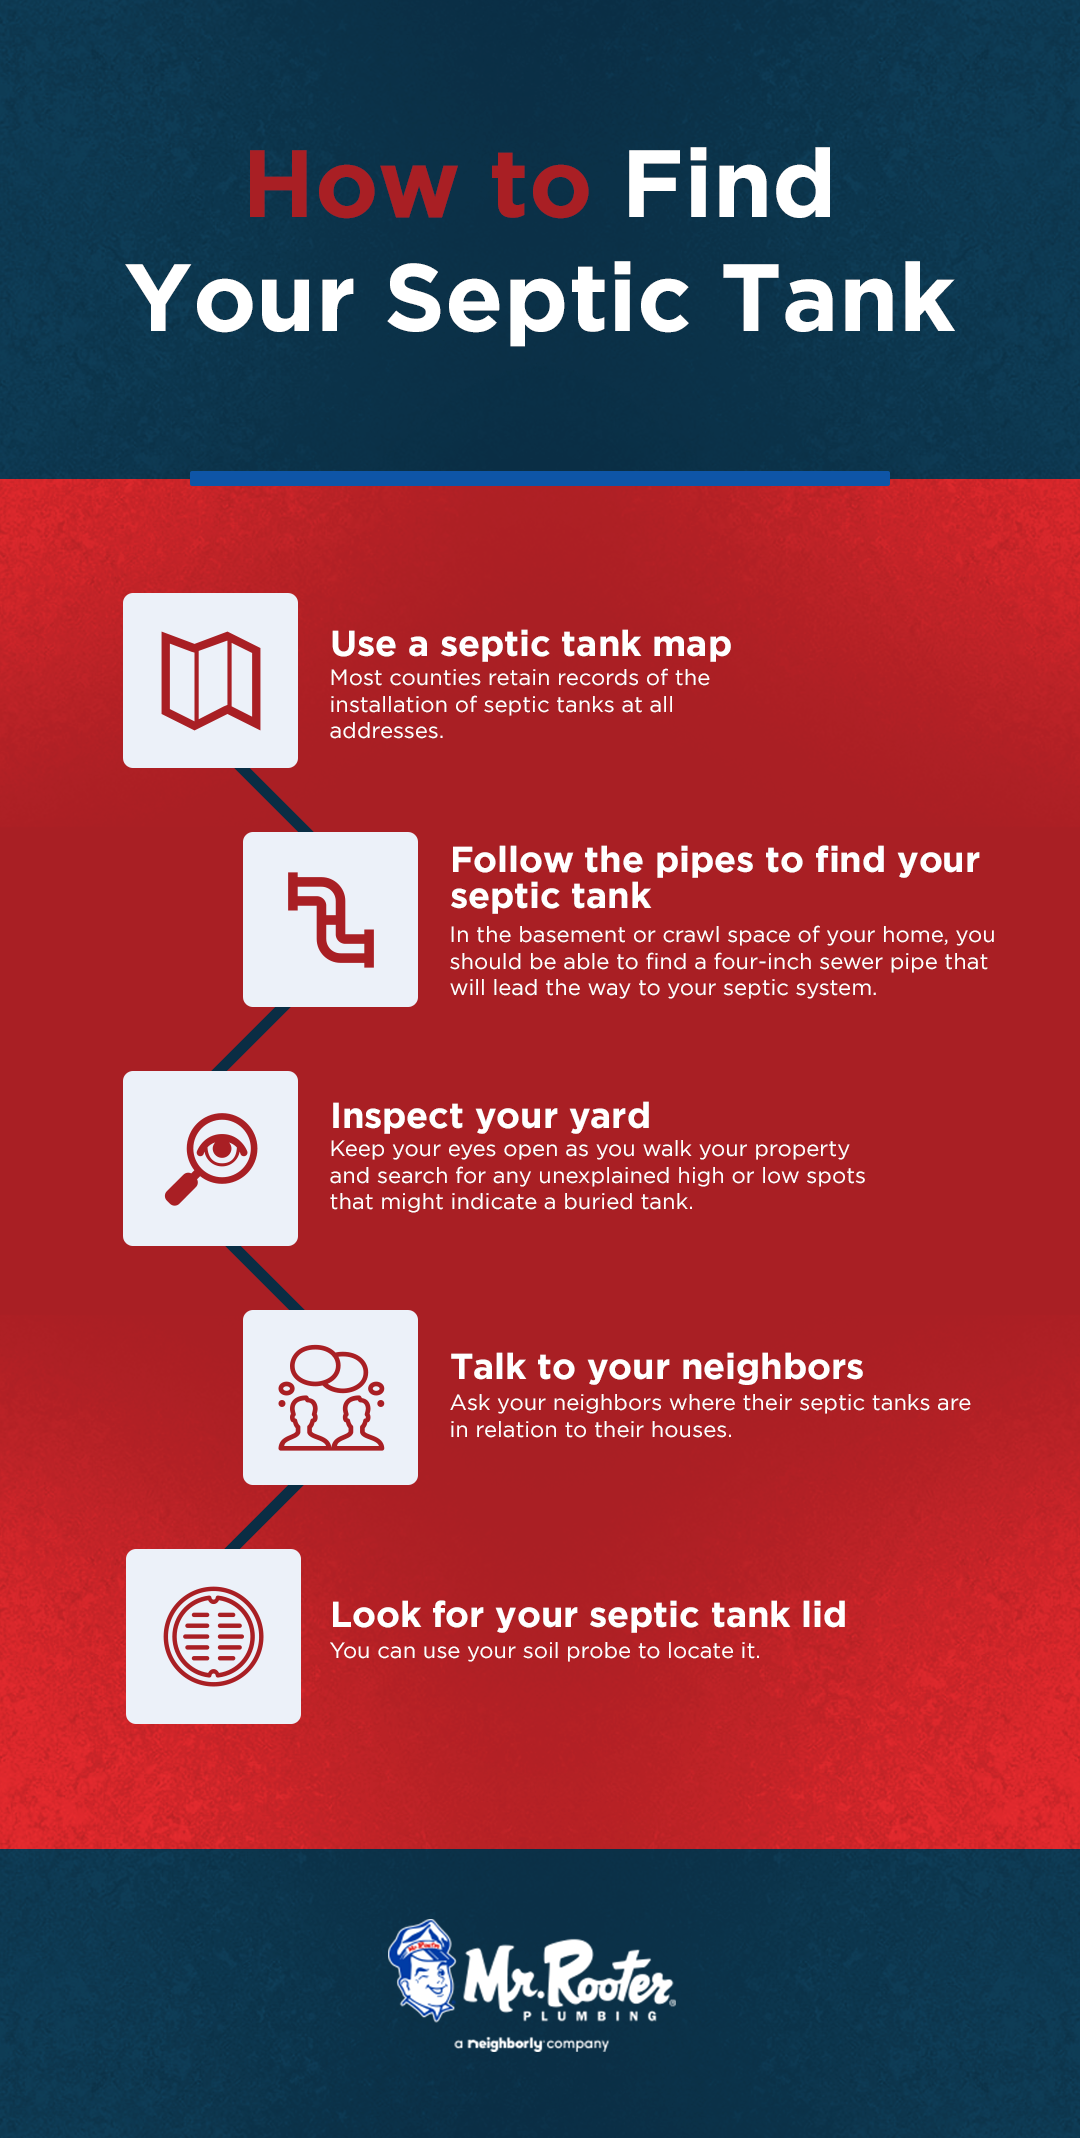 steps to finding septic tank